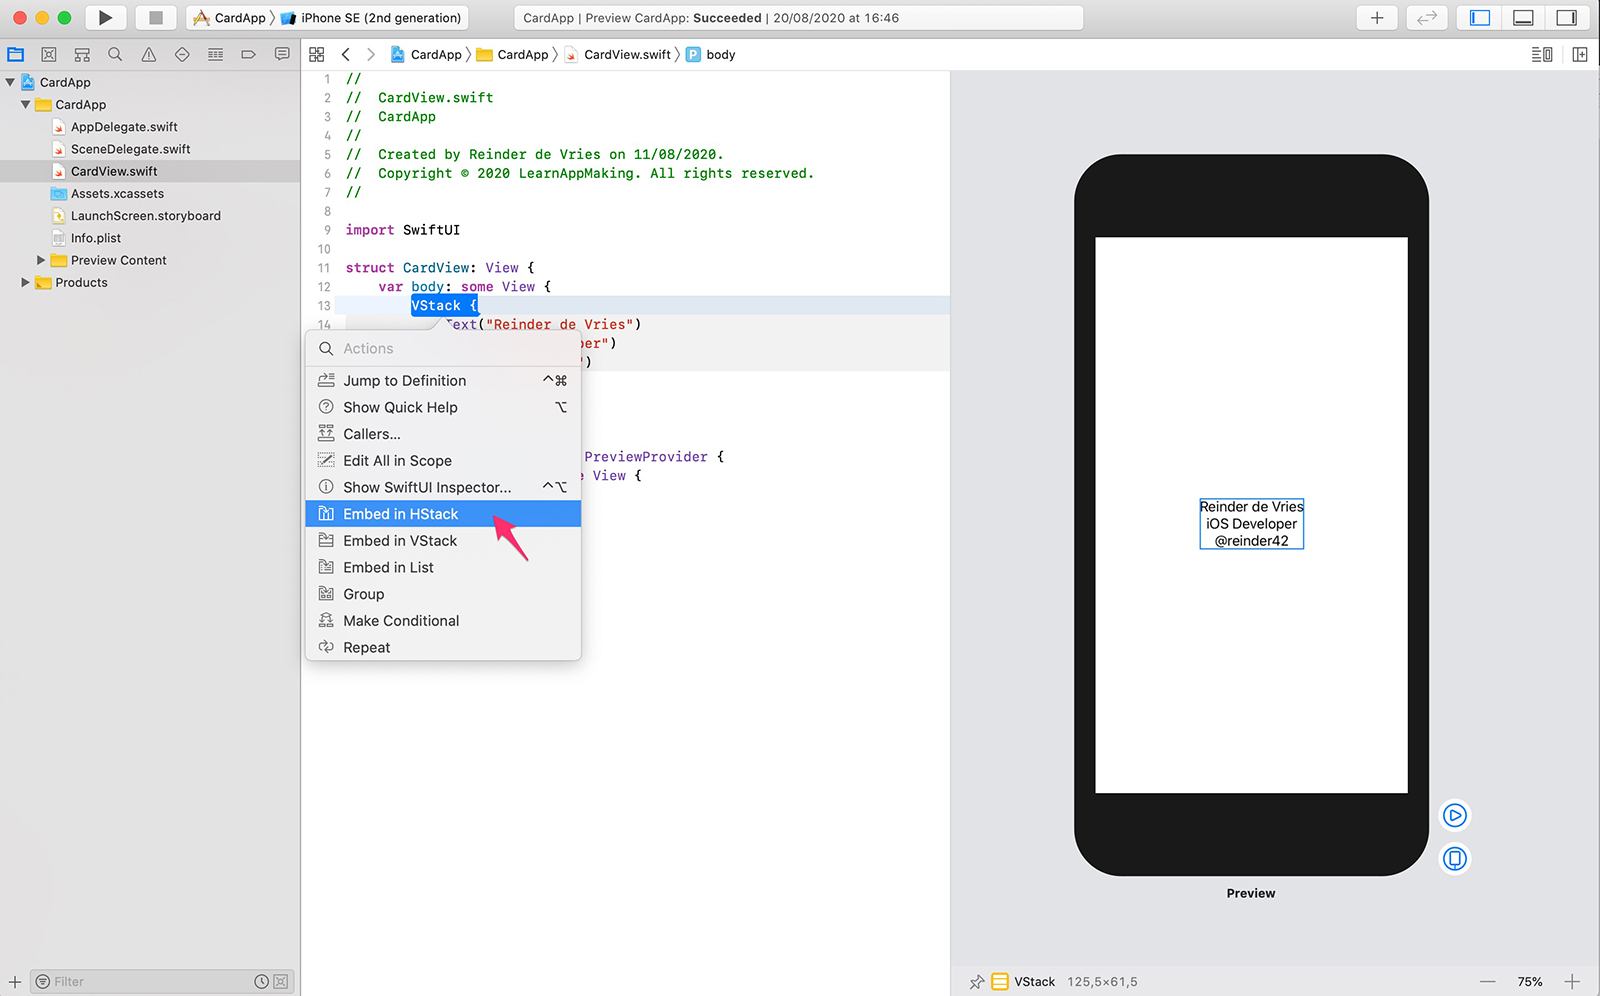 Xcode, Embed in HStack